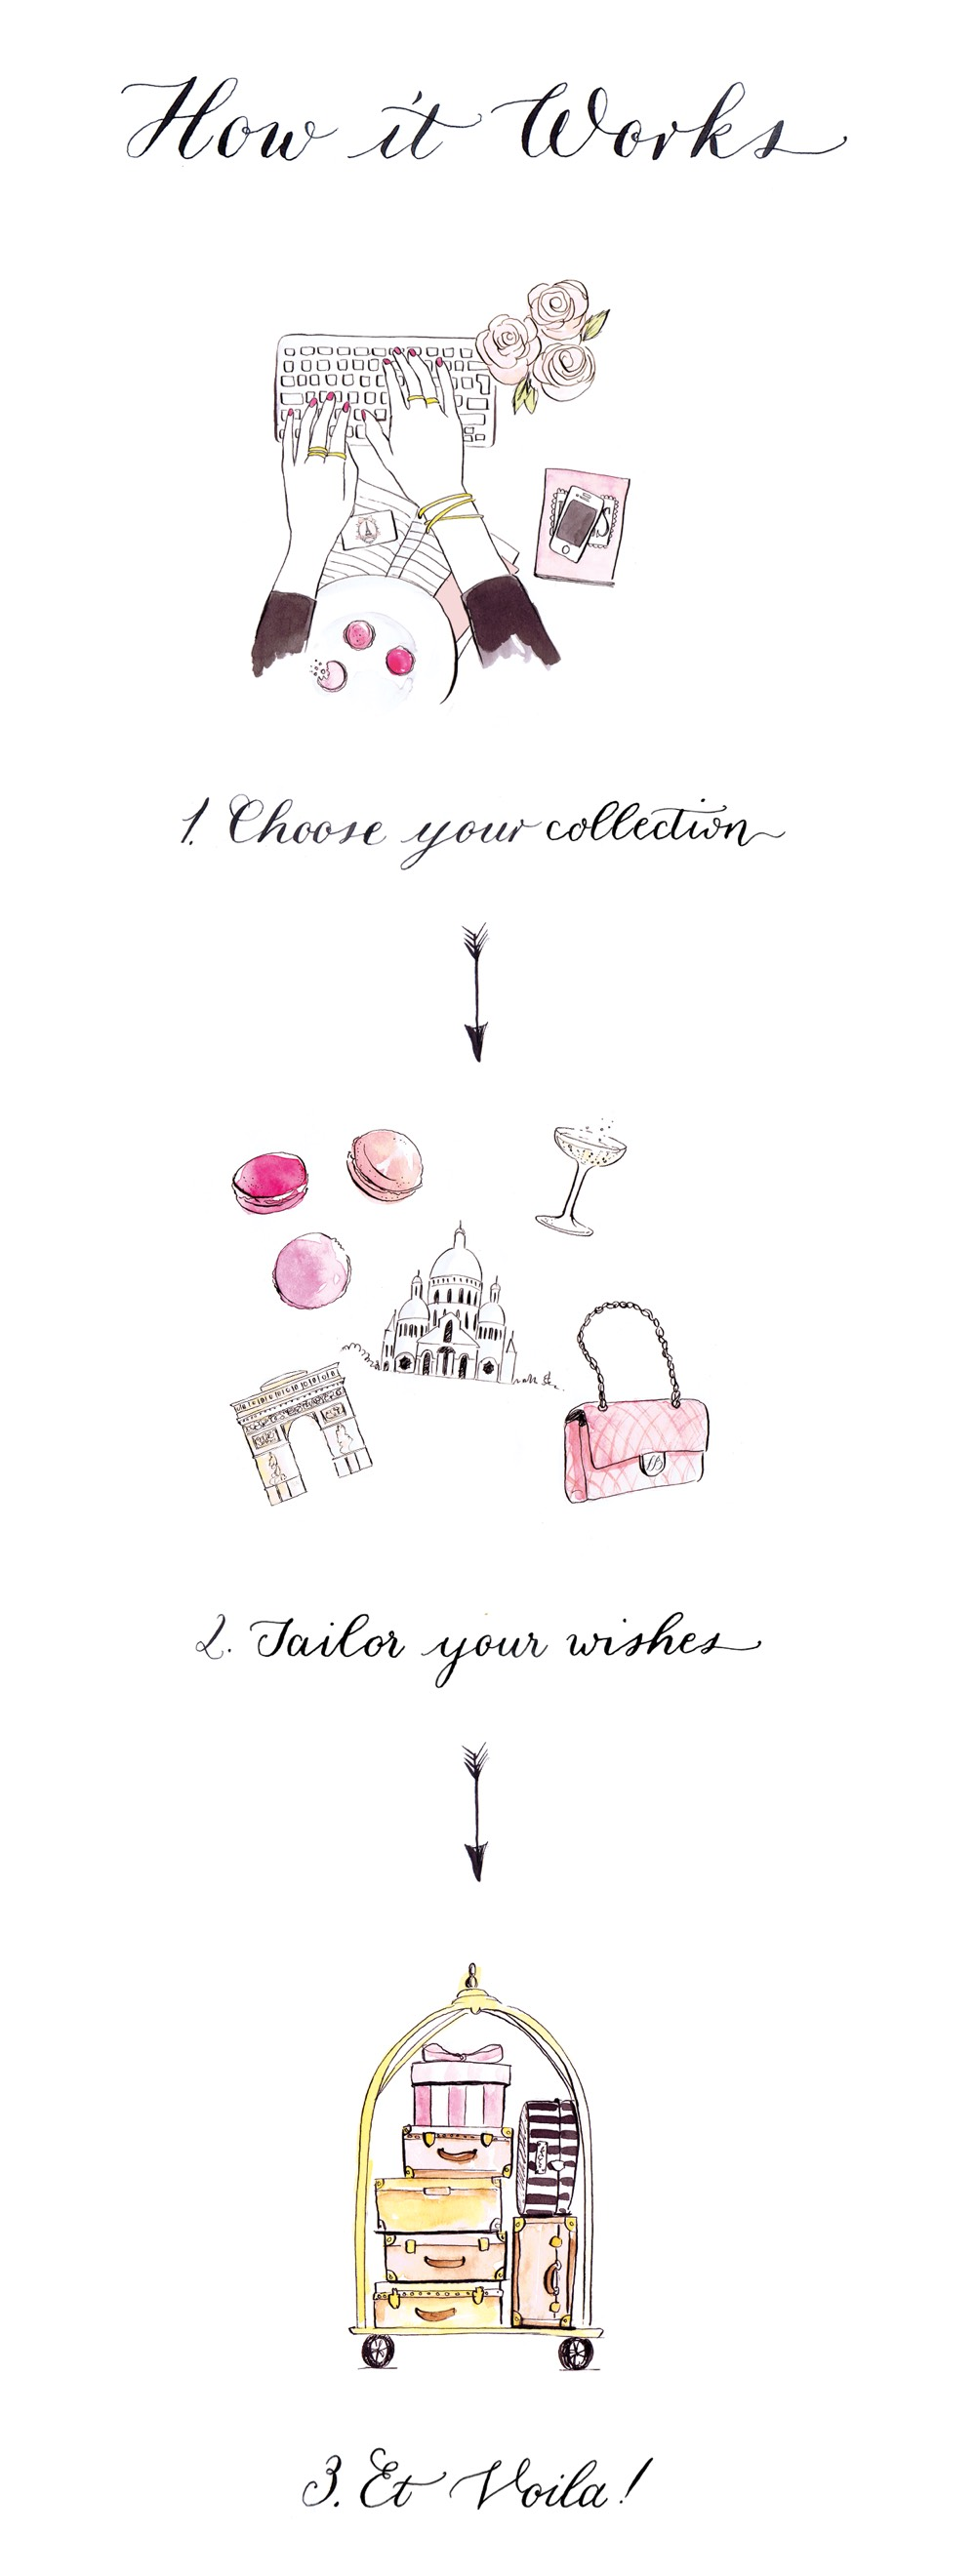 How it Works - 1. Choose your collection, 2. Tailor your wishes, 3. Et Voila!